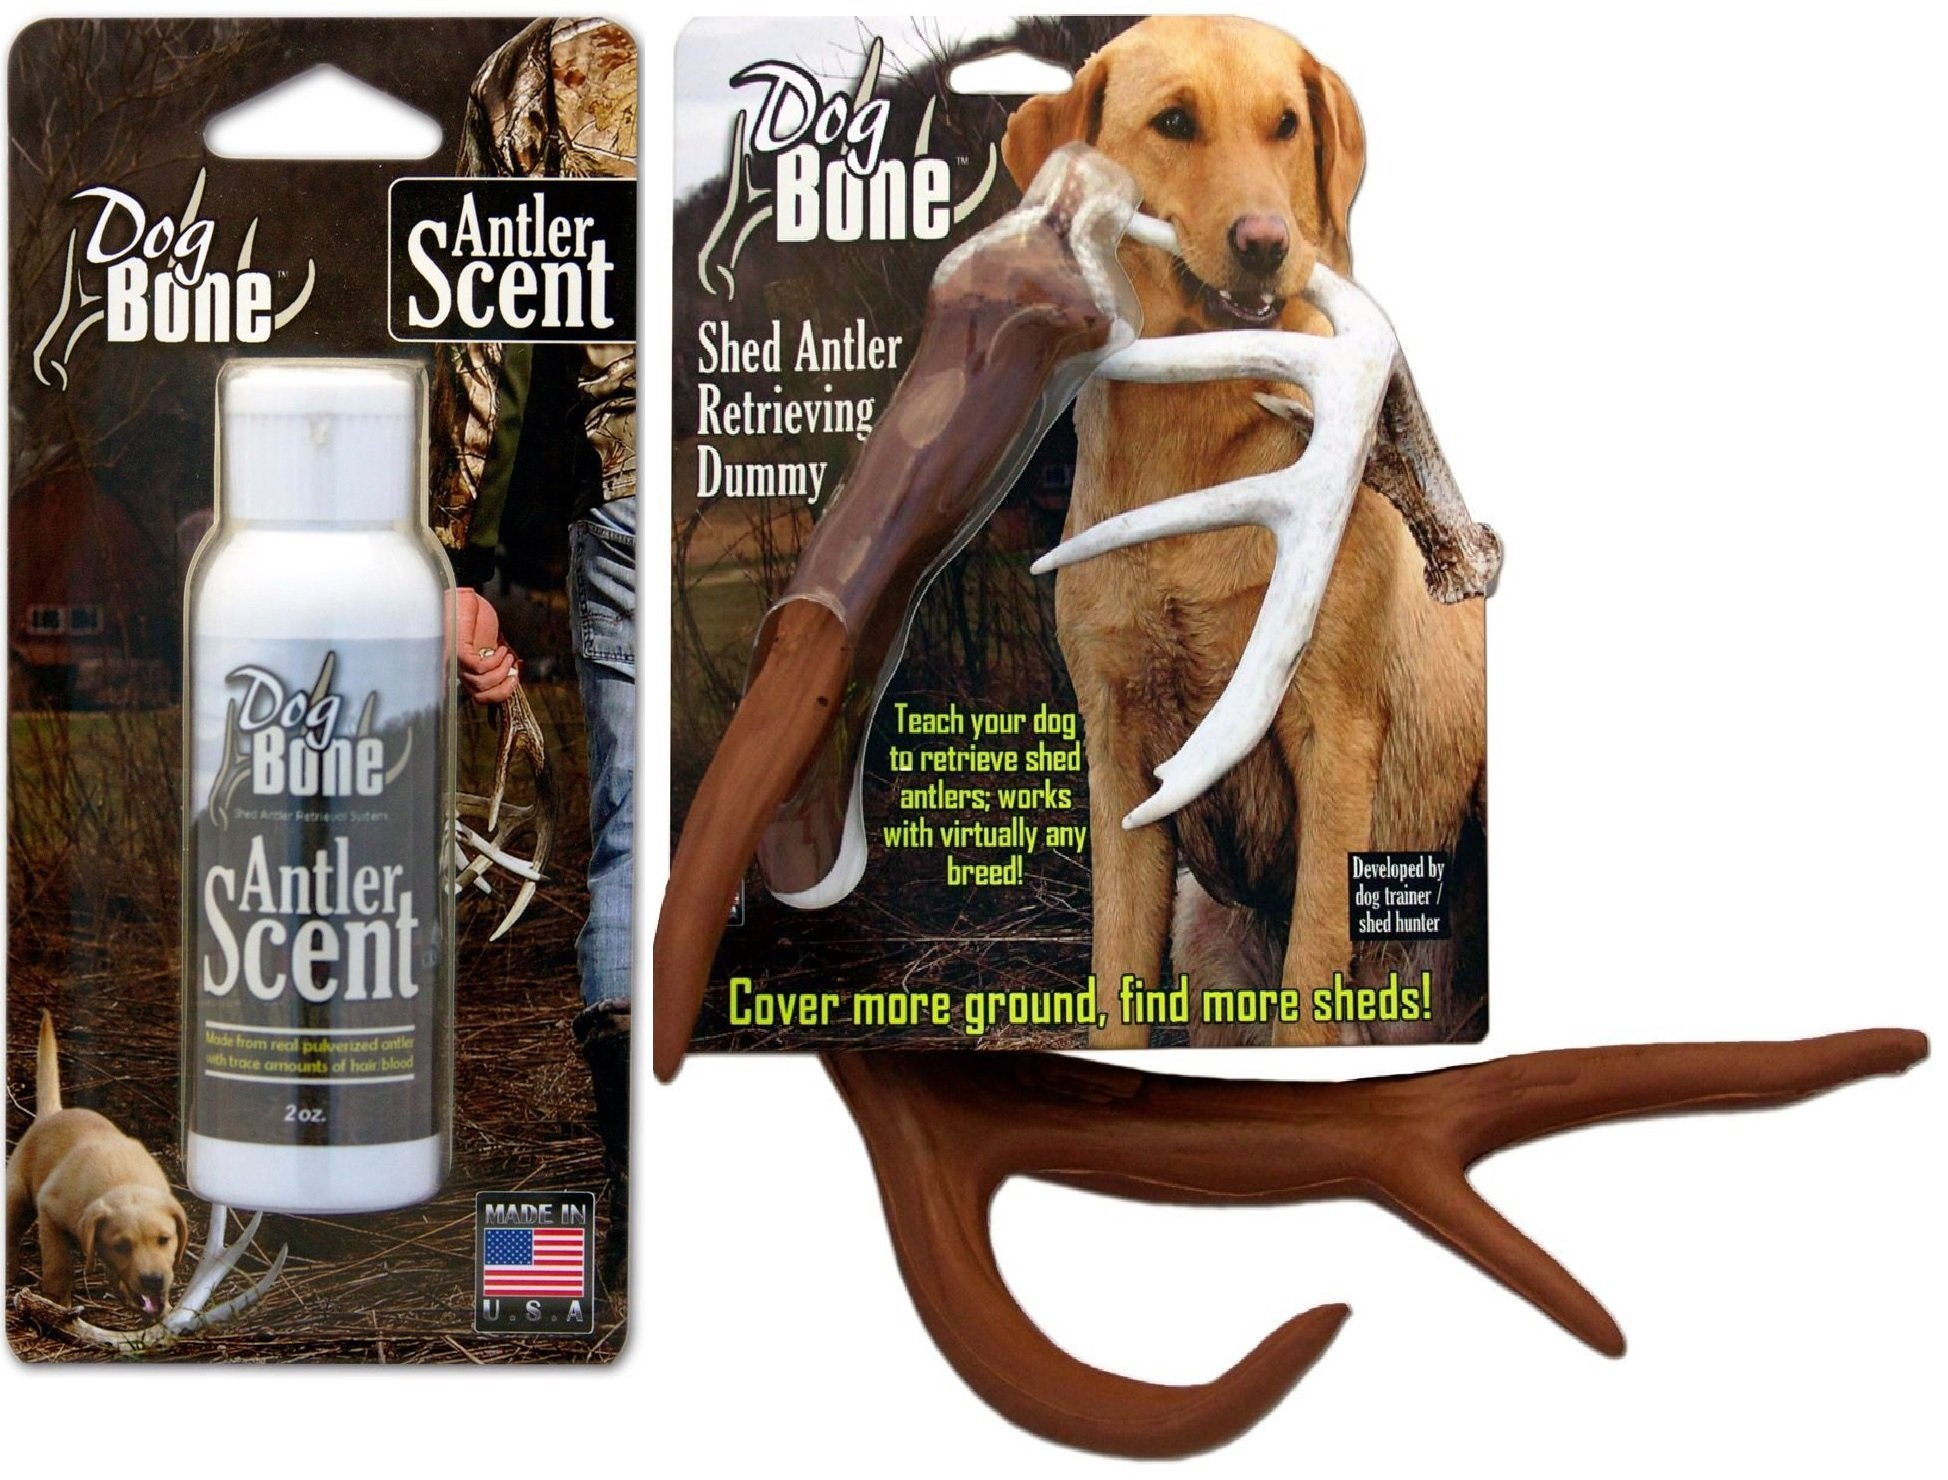 Dog Bone 2oz. Antler Scent for Shed Dog Training by Moore Outdoors DBAS and DogBone Shed Antler Dog Retrieving and Training Dummy (Brown) by Moore Outdoors DBAD by Moore Outdoors (Image #1)